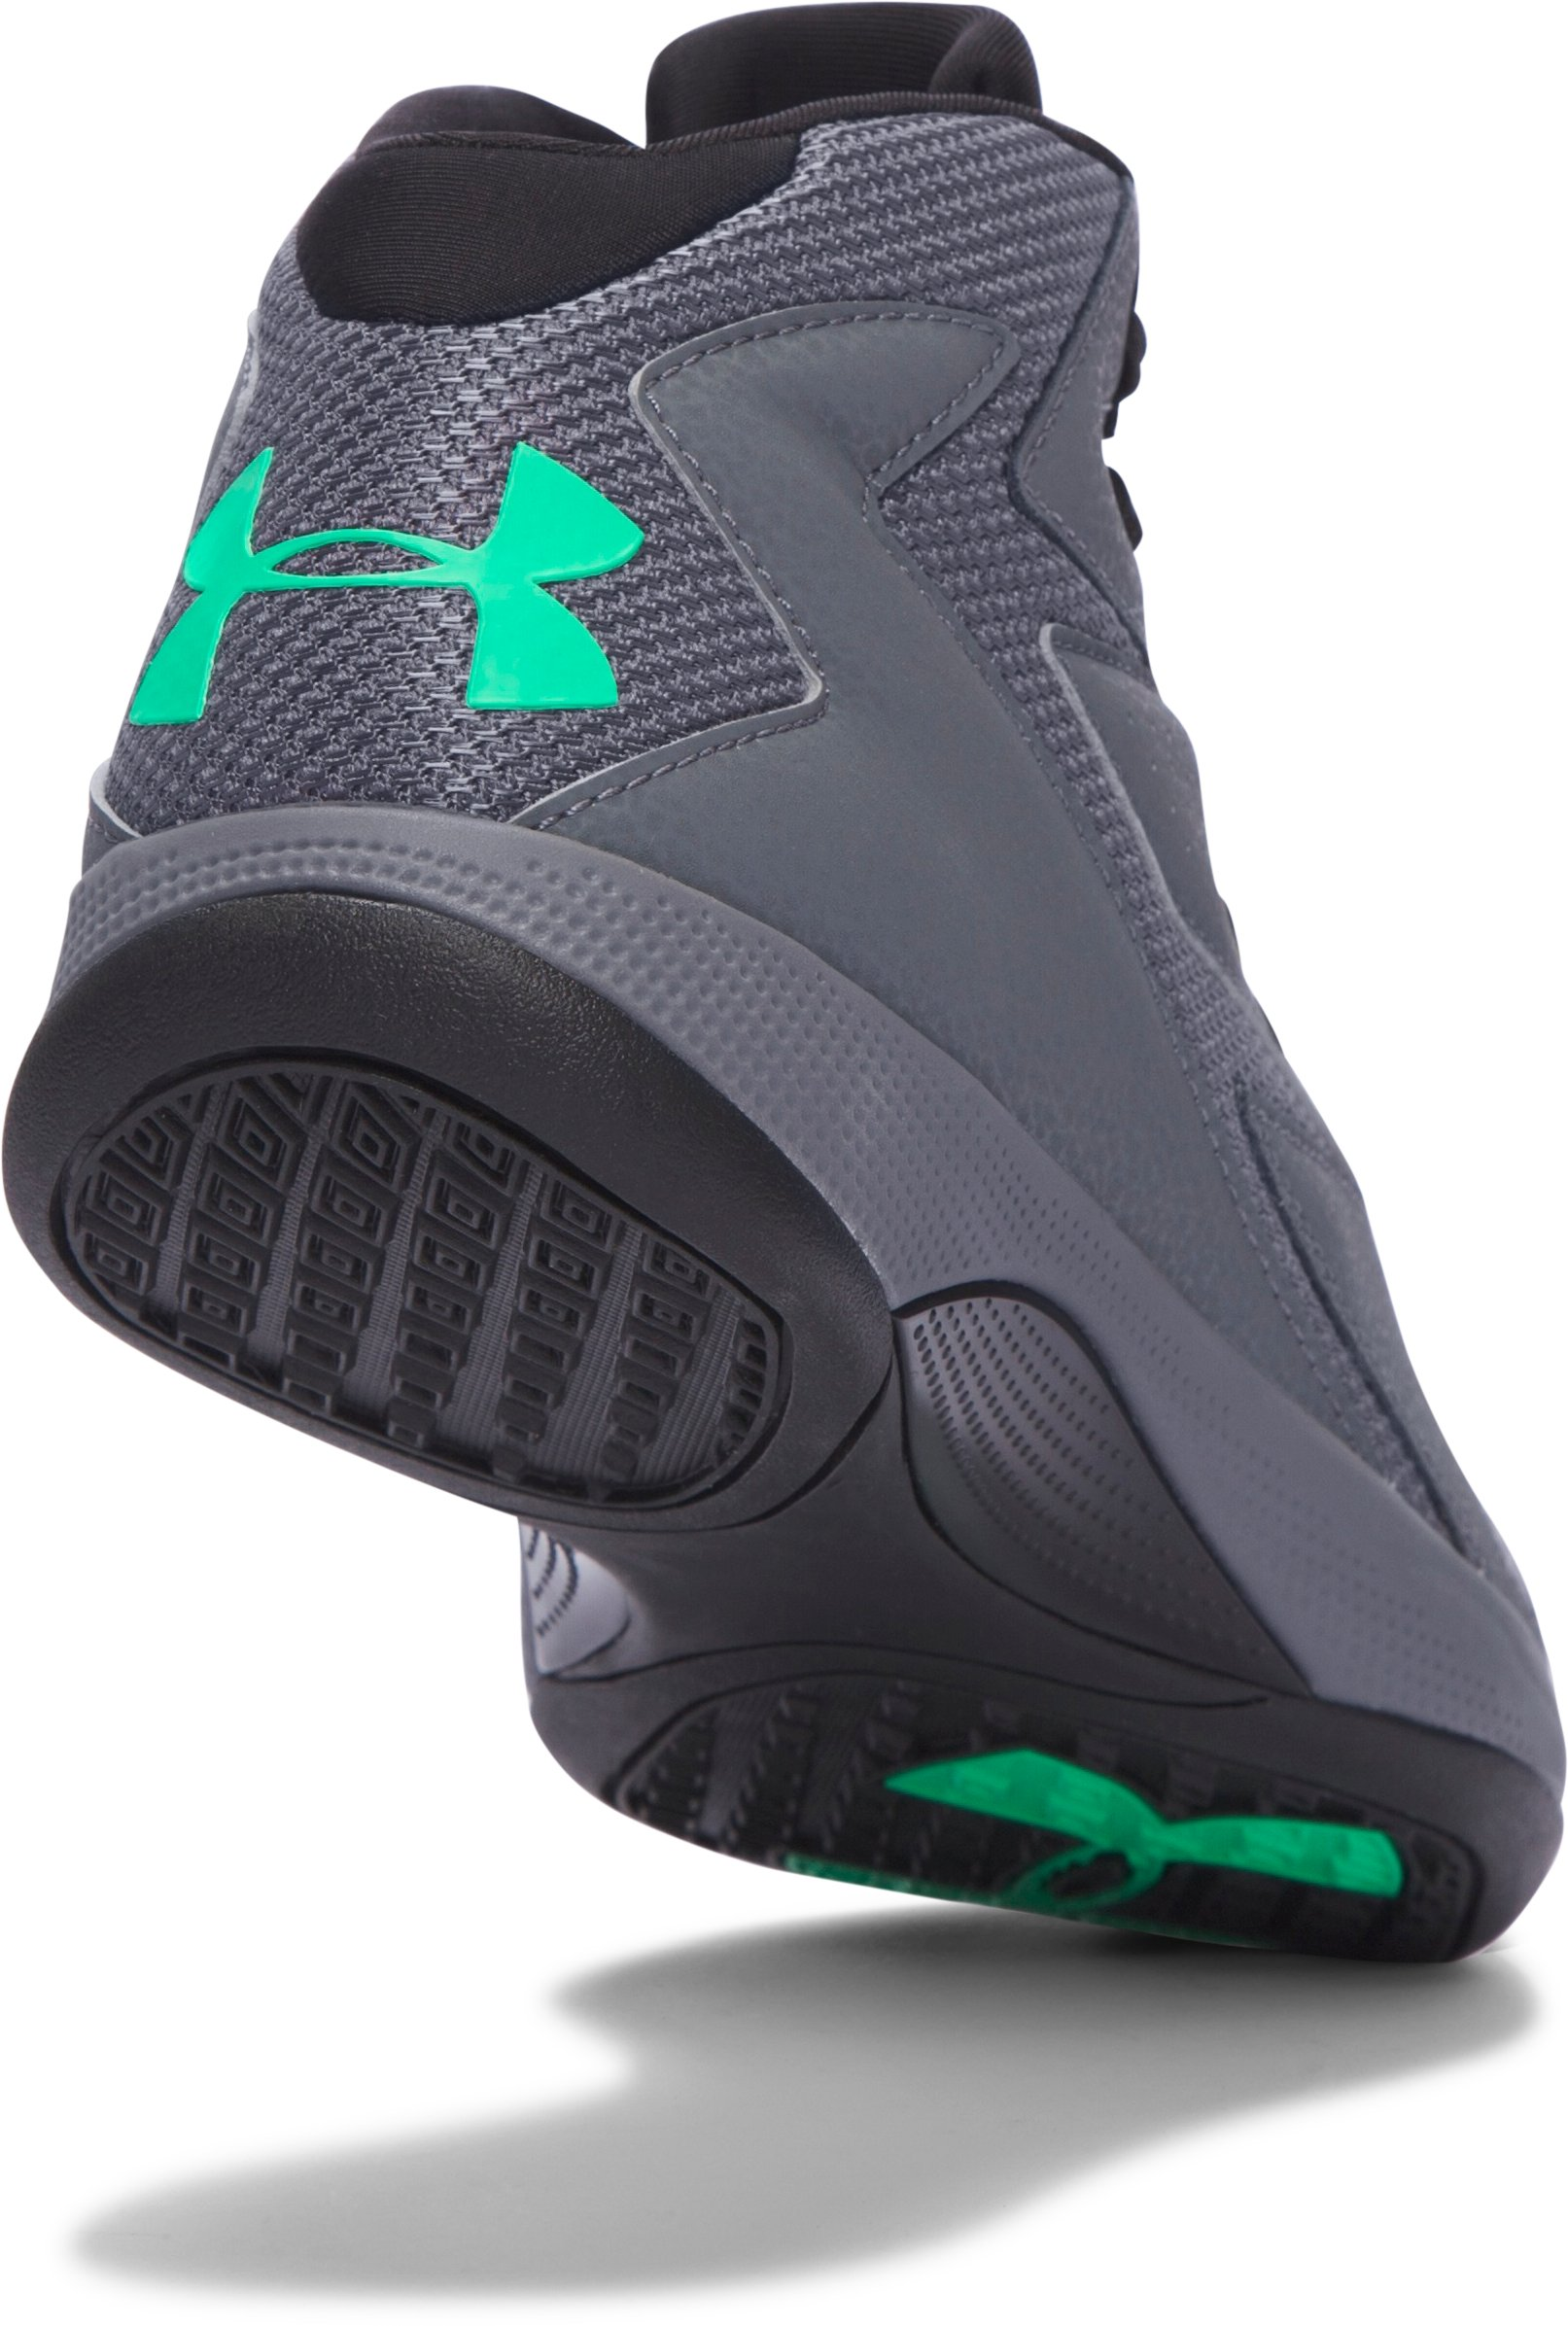 Men's UA Lockdown Basketball Shoes, RHINO GRAY